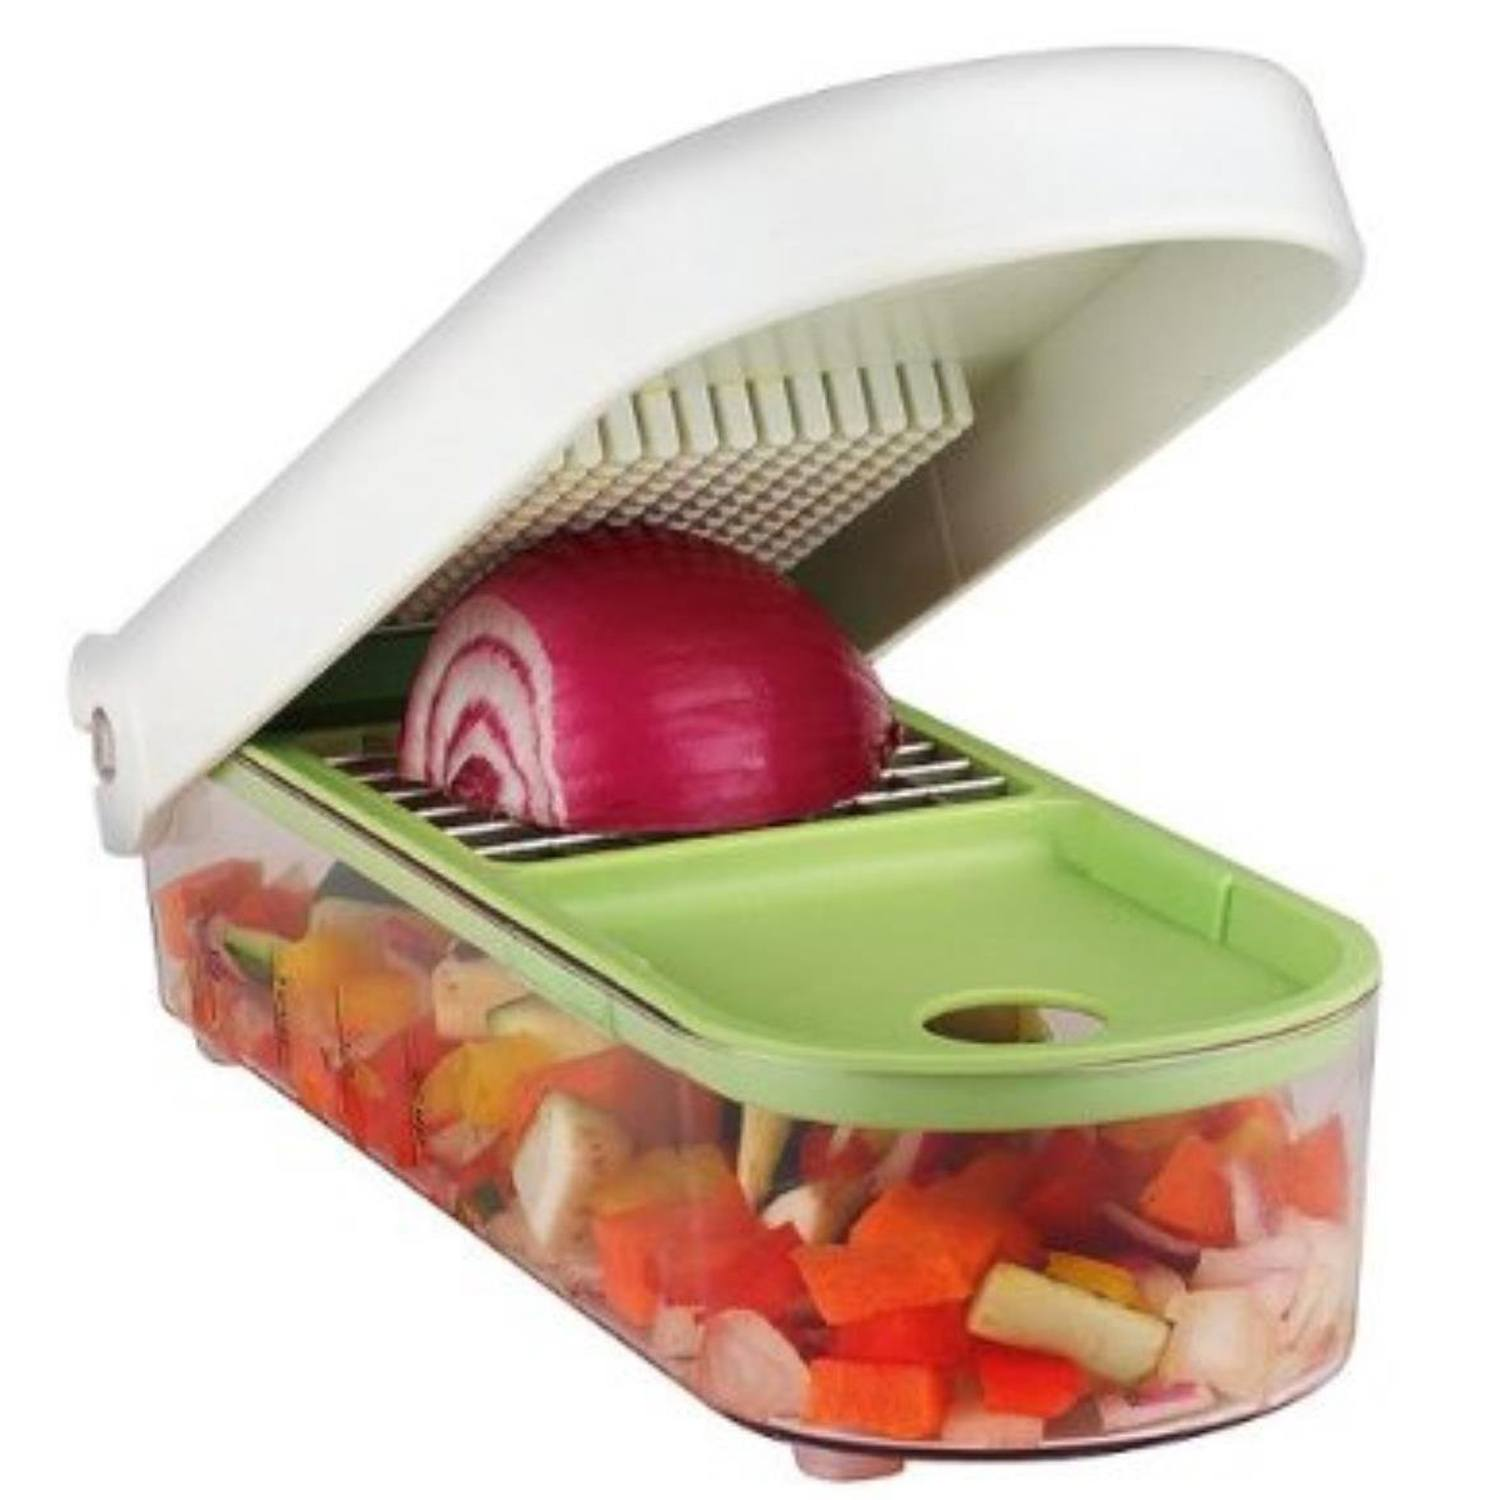 Vidalia Chop Wizard Manual Chopper for Vegetables